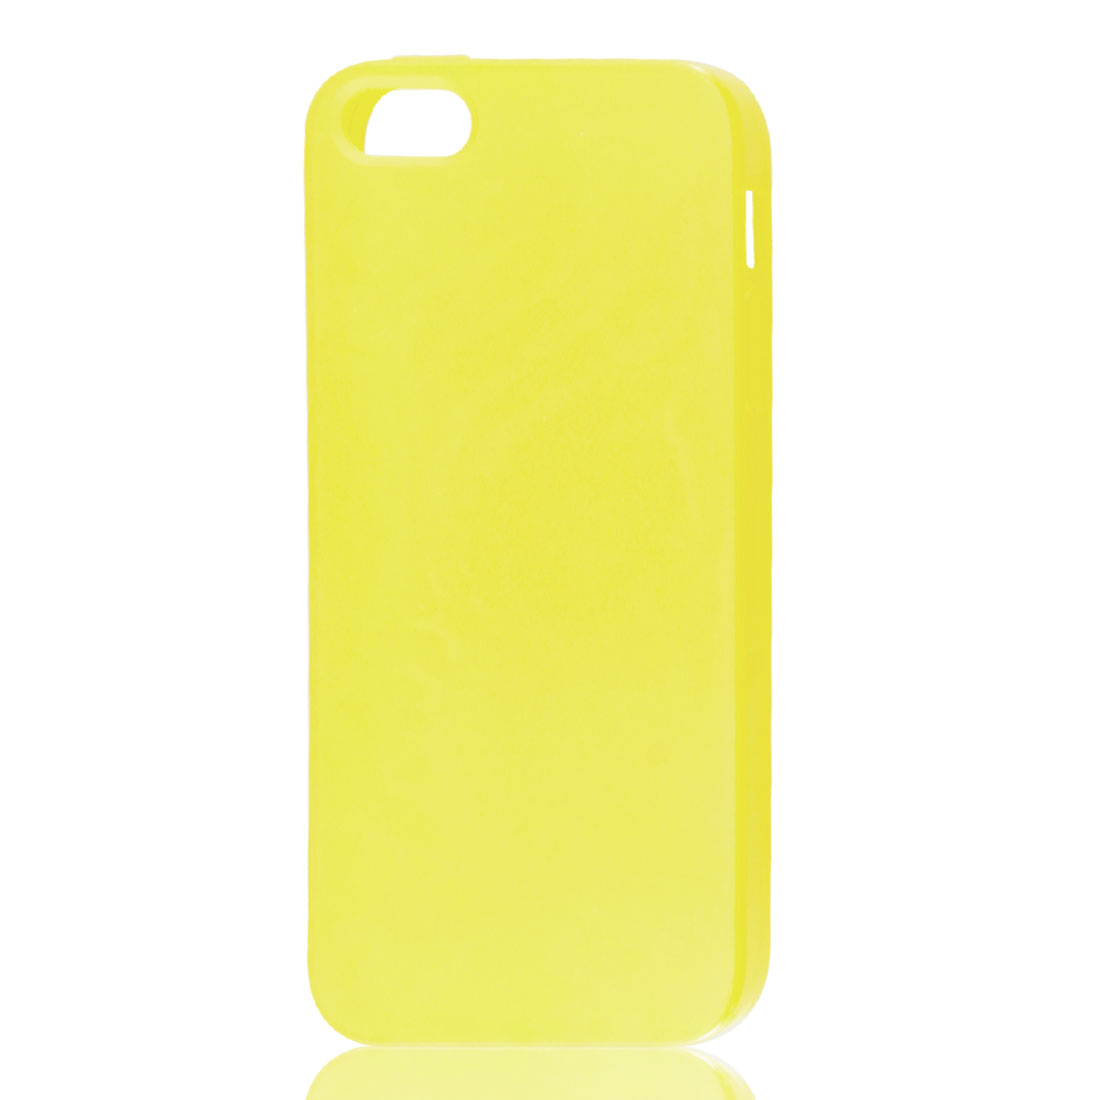 Yellow Soft Plastic Matte Protective Case Cover Skin for Apple iPhone 5 5G